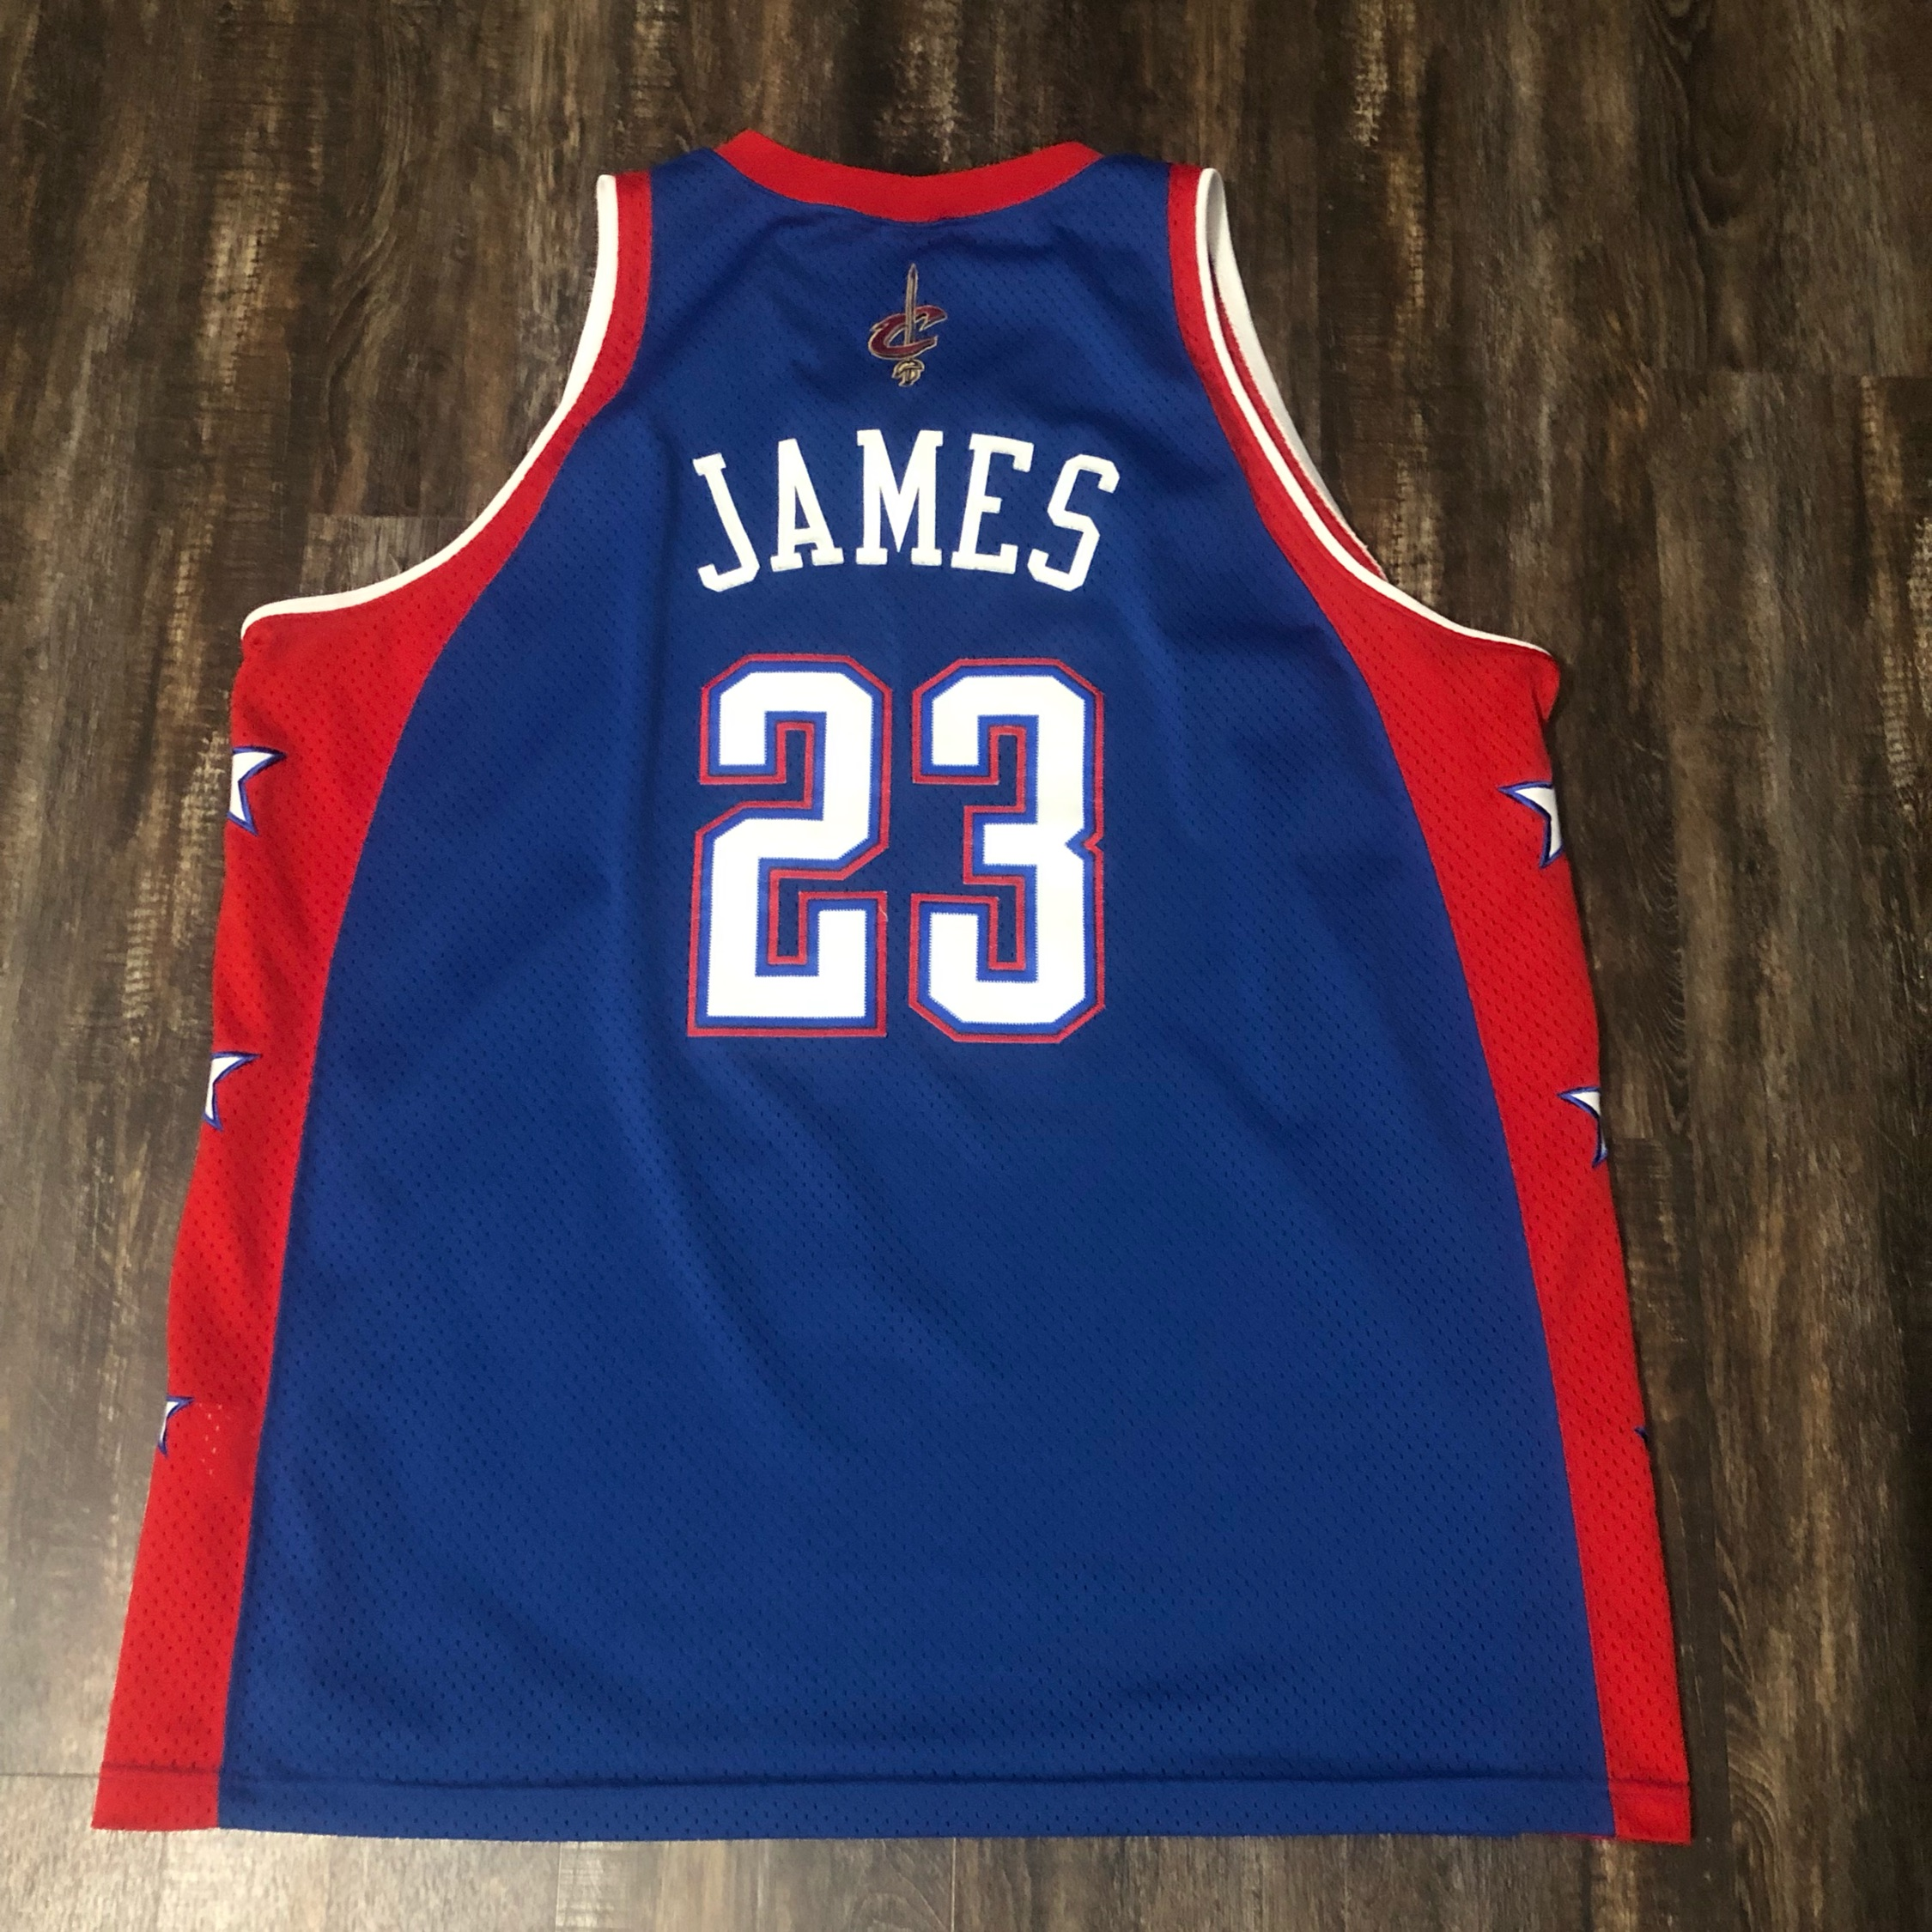 half off 5ce77 90a21 2004 Nike Lebron James All Star Jersey